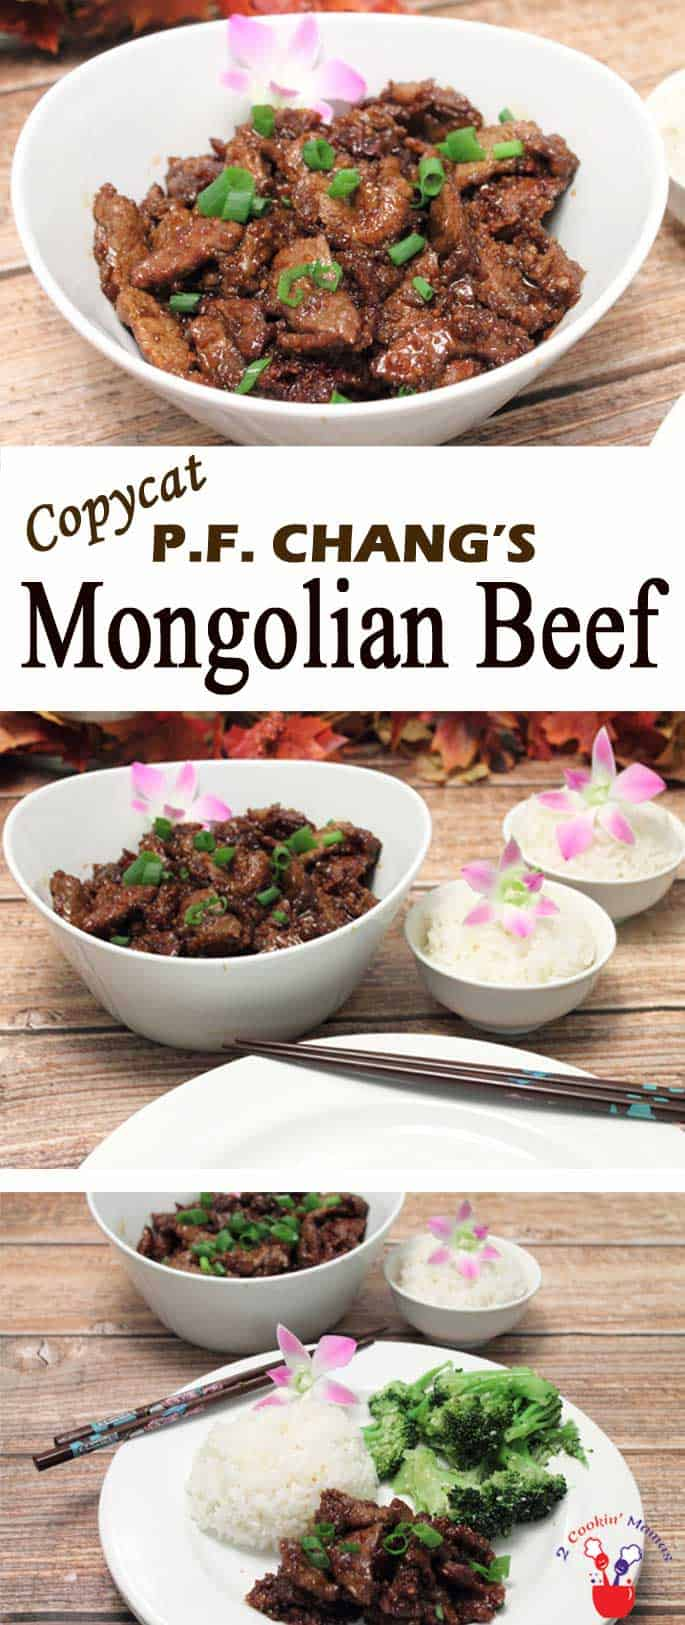 Love PF Chang's Mongolian Beef? This easy copycat recipe tastes just like the original - crispy beef in a deliciously flavored sweet soy sauce. #mongolianbeef #dinner #quickandeasydinner #asiancuisine #beef